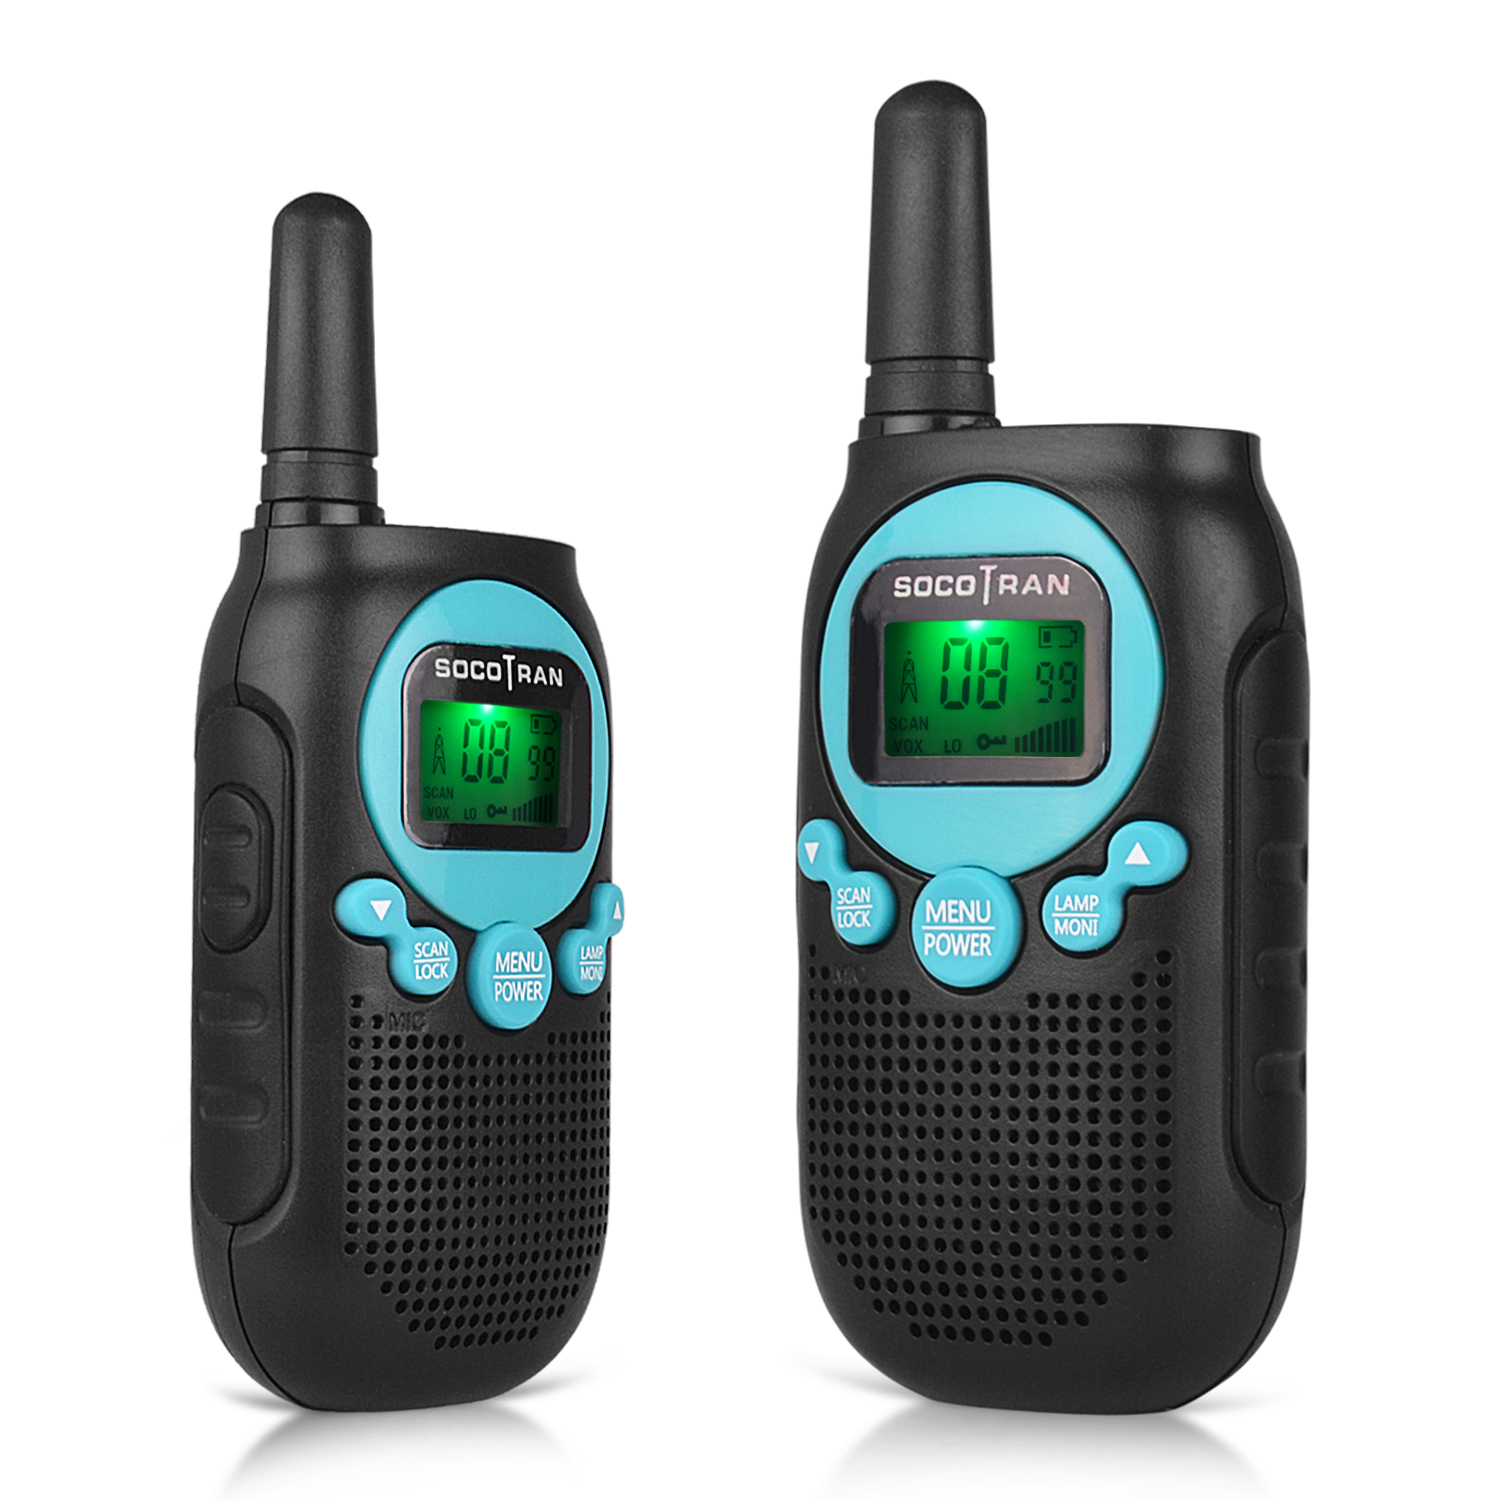 Rechargeable Walkie Talkies/Long Range Two Way Radio for Adult UHF 400-470Mhz 2 Way Radio 16 Channel FRS LED Display Scan 2 Pack VOX